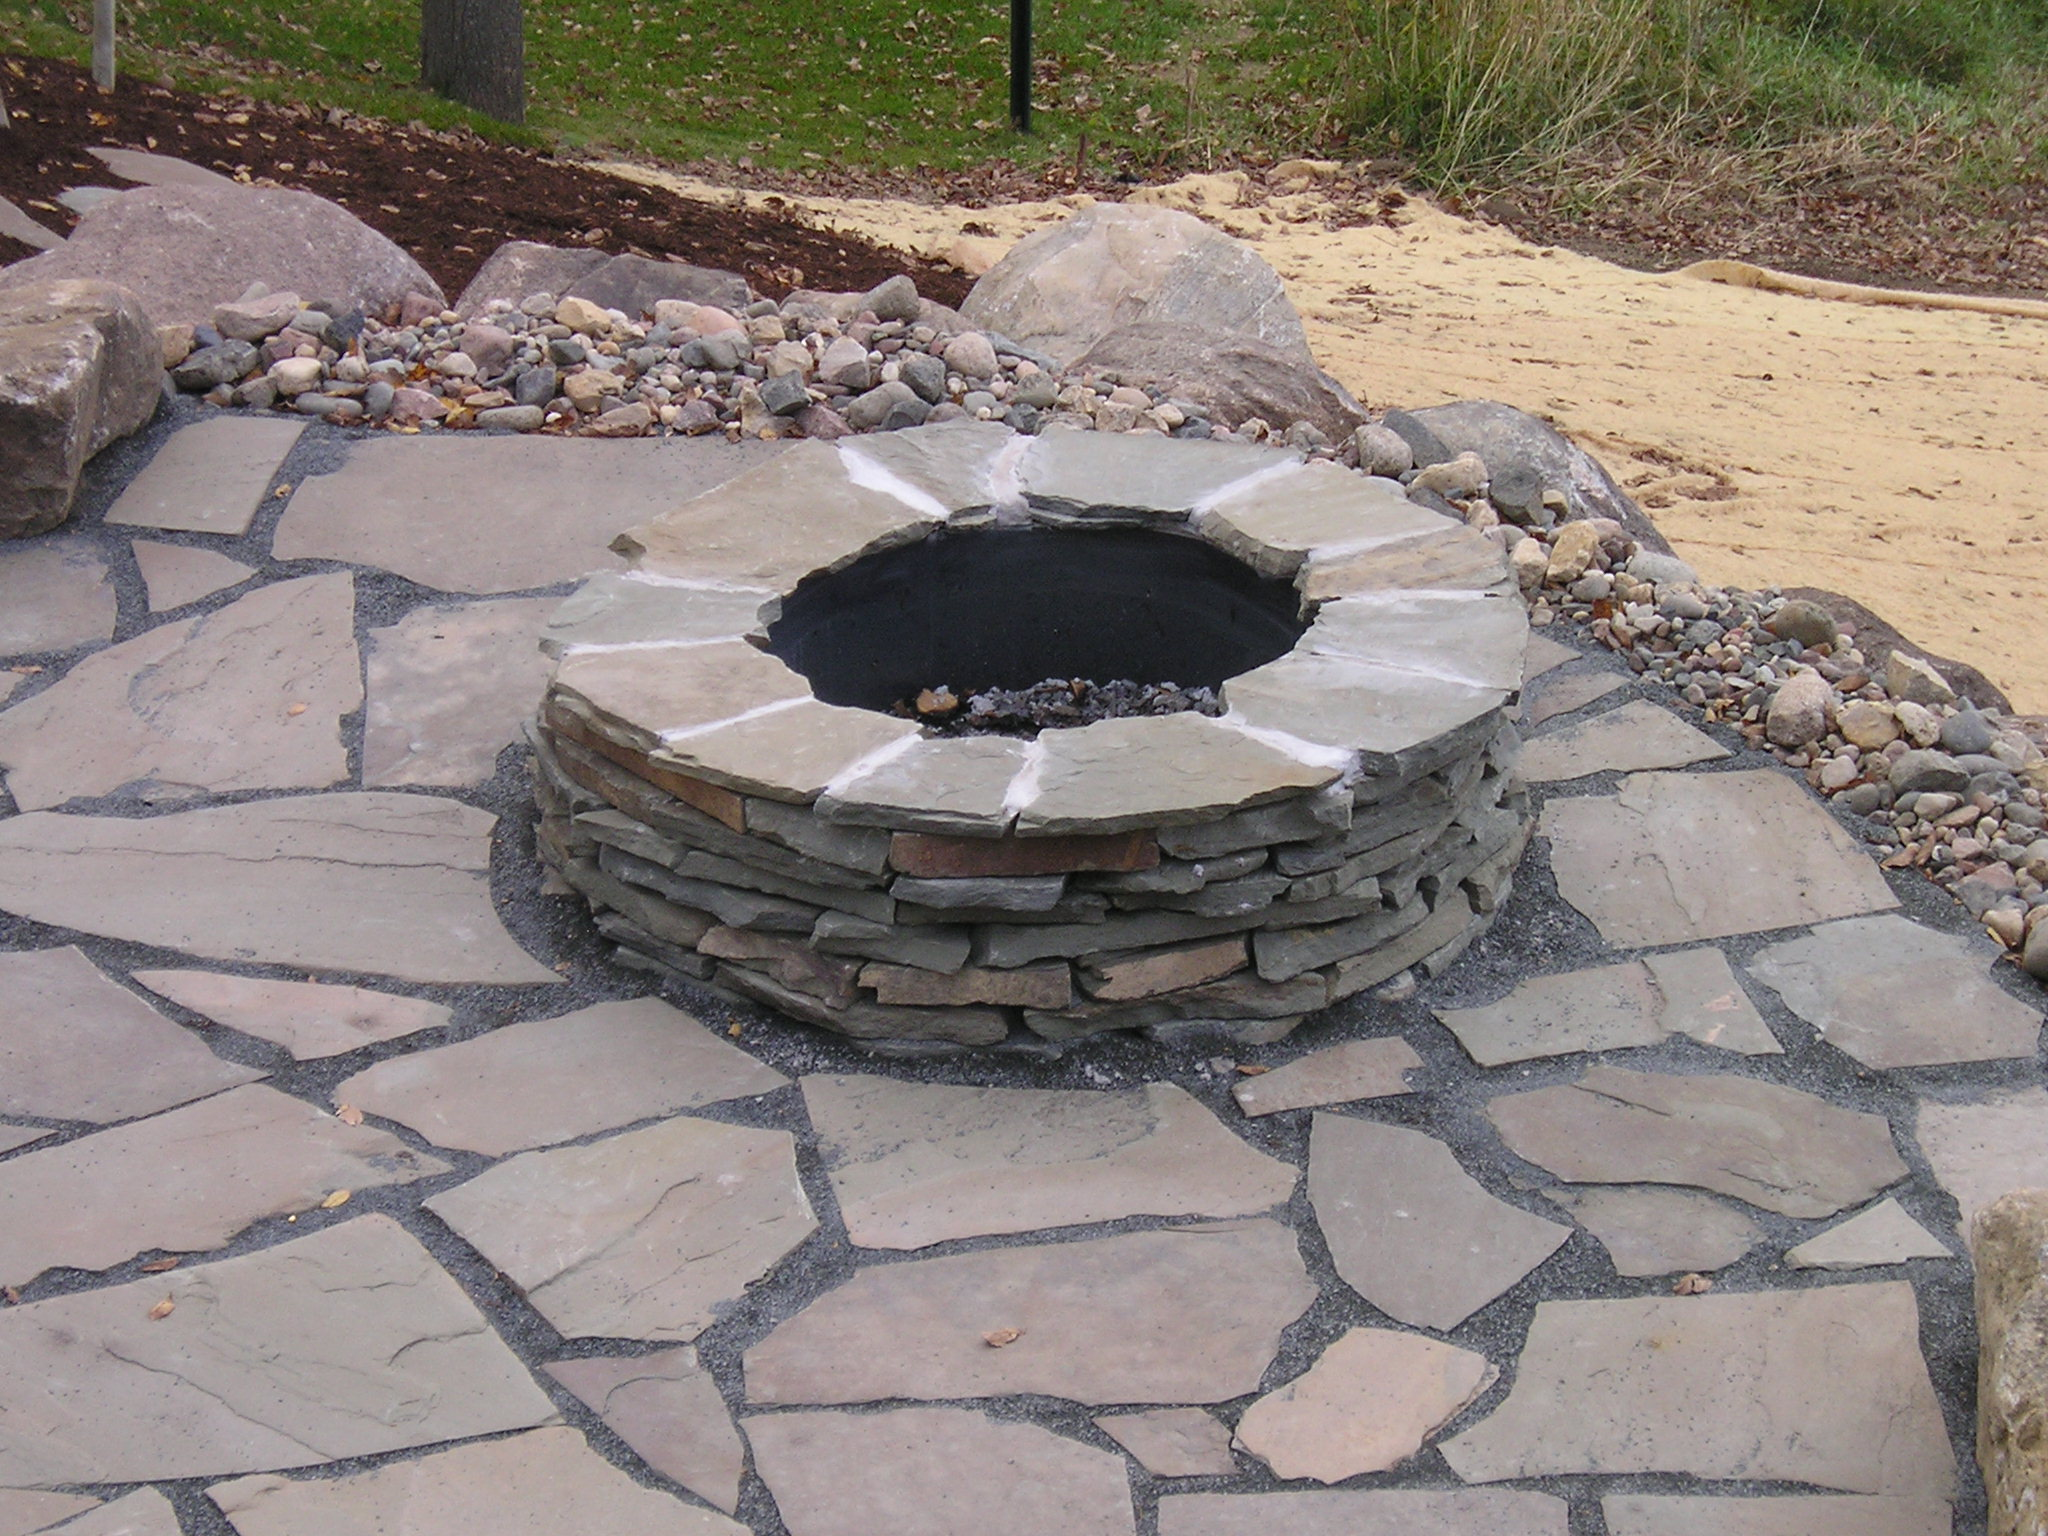 Places to buy bricks for fire pit - Beyond ca - Car Forums